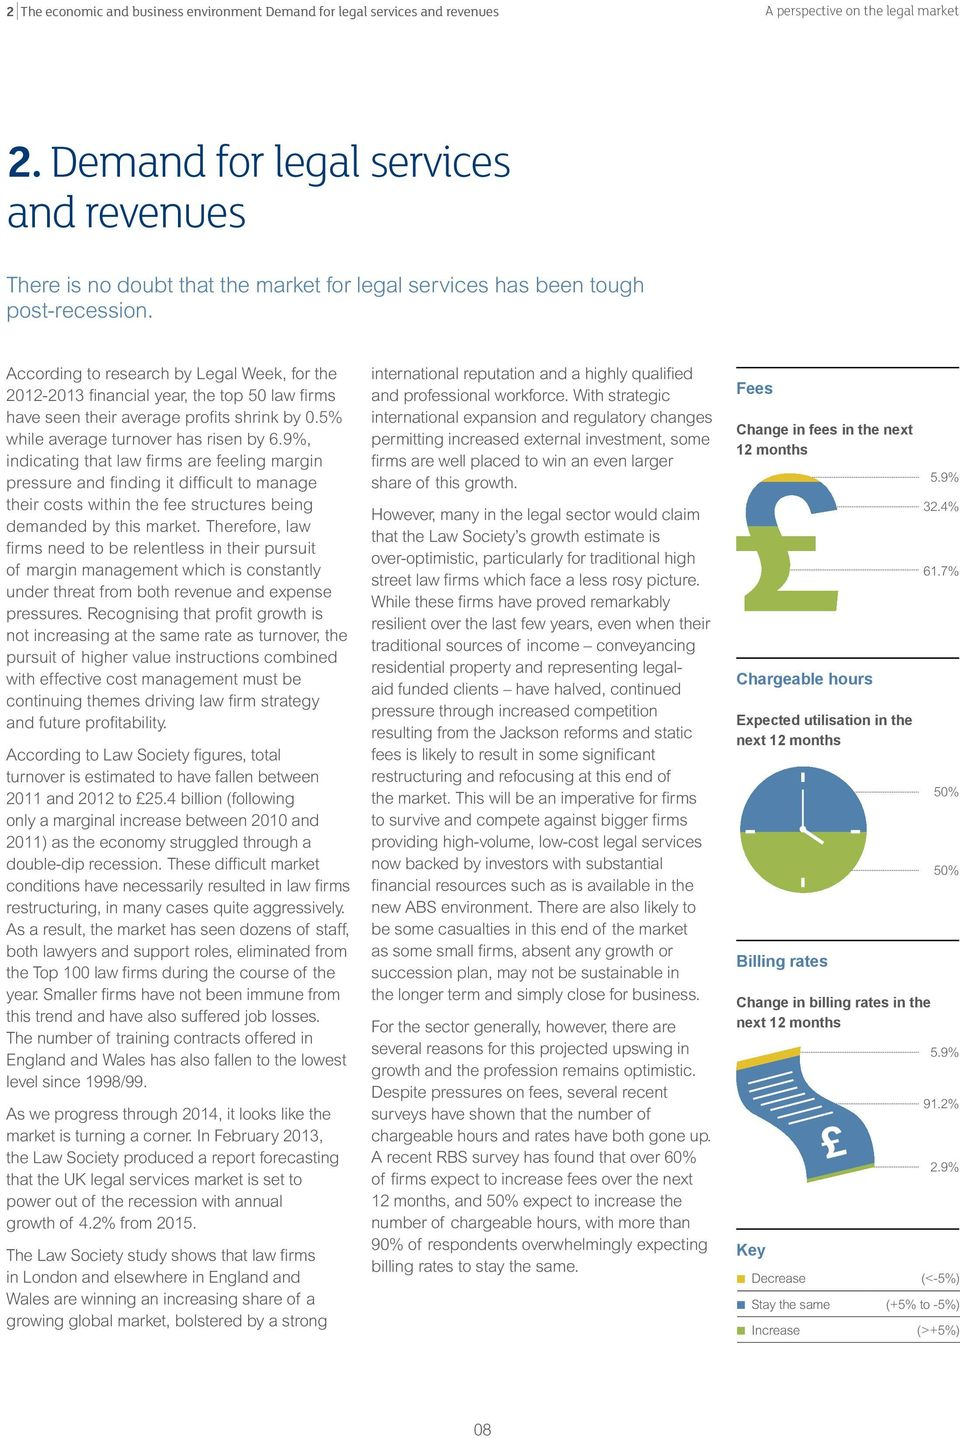 According to research by Legal Week, for the 2012-2013 financial year, the top 50 law firms have seen their average profits shrink by 0.5% while average turnover has risen by 6.